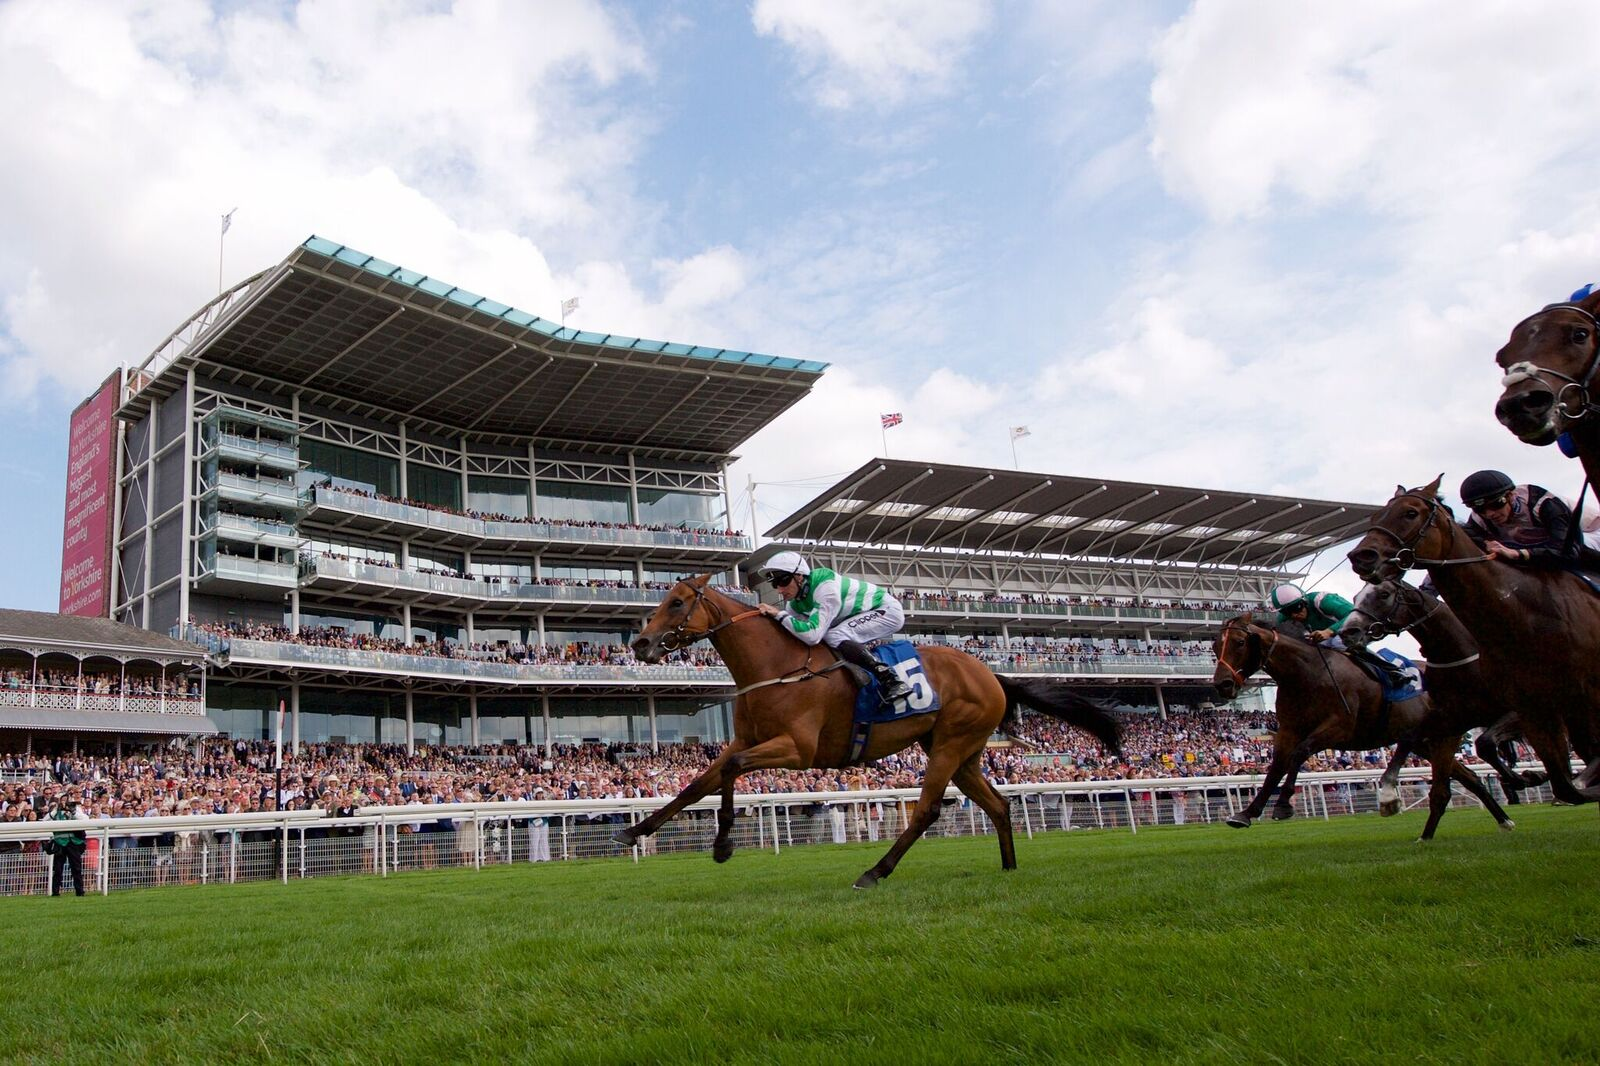 Three Races Which Could Produce Big Price Winners At The 2019 Cheltenham Festival